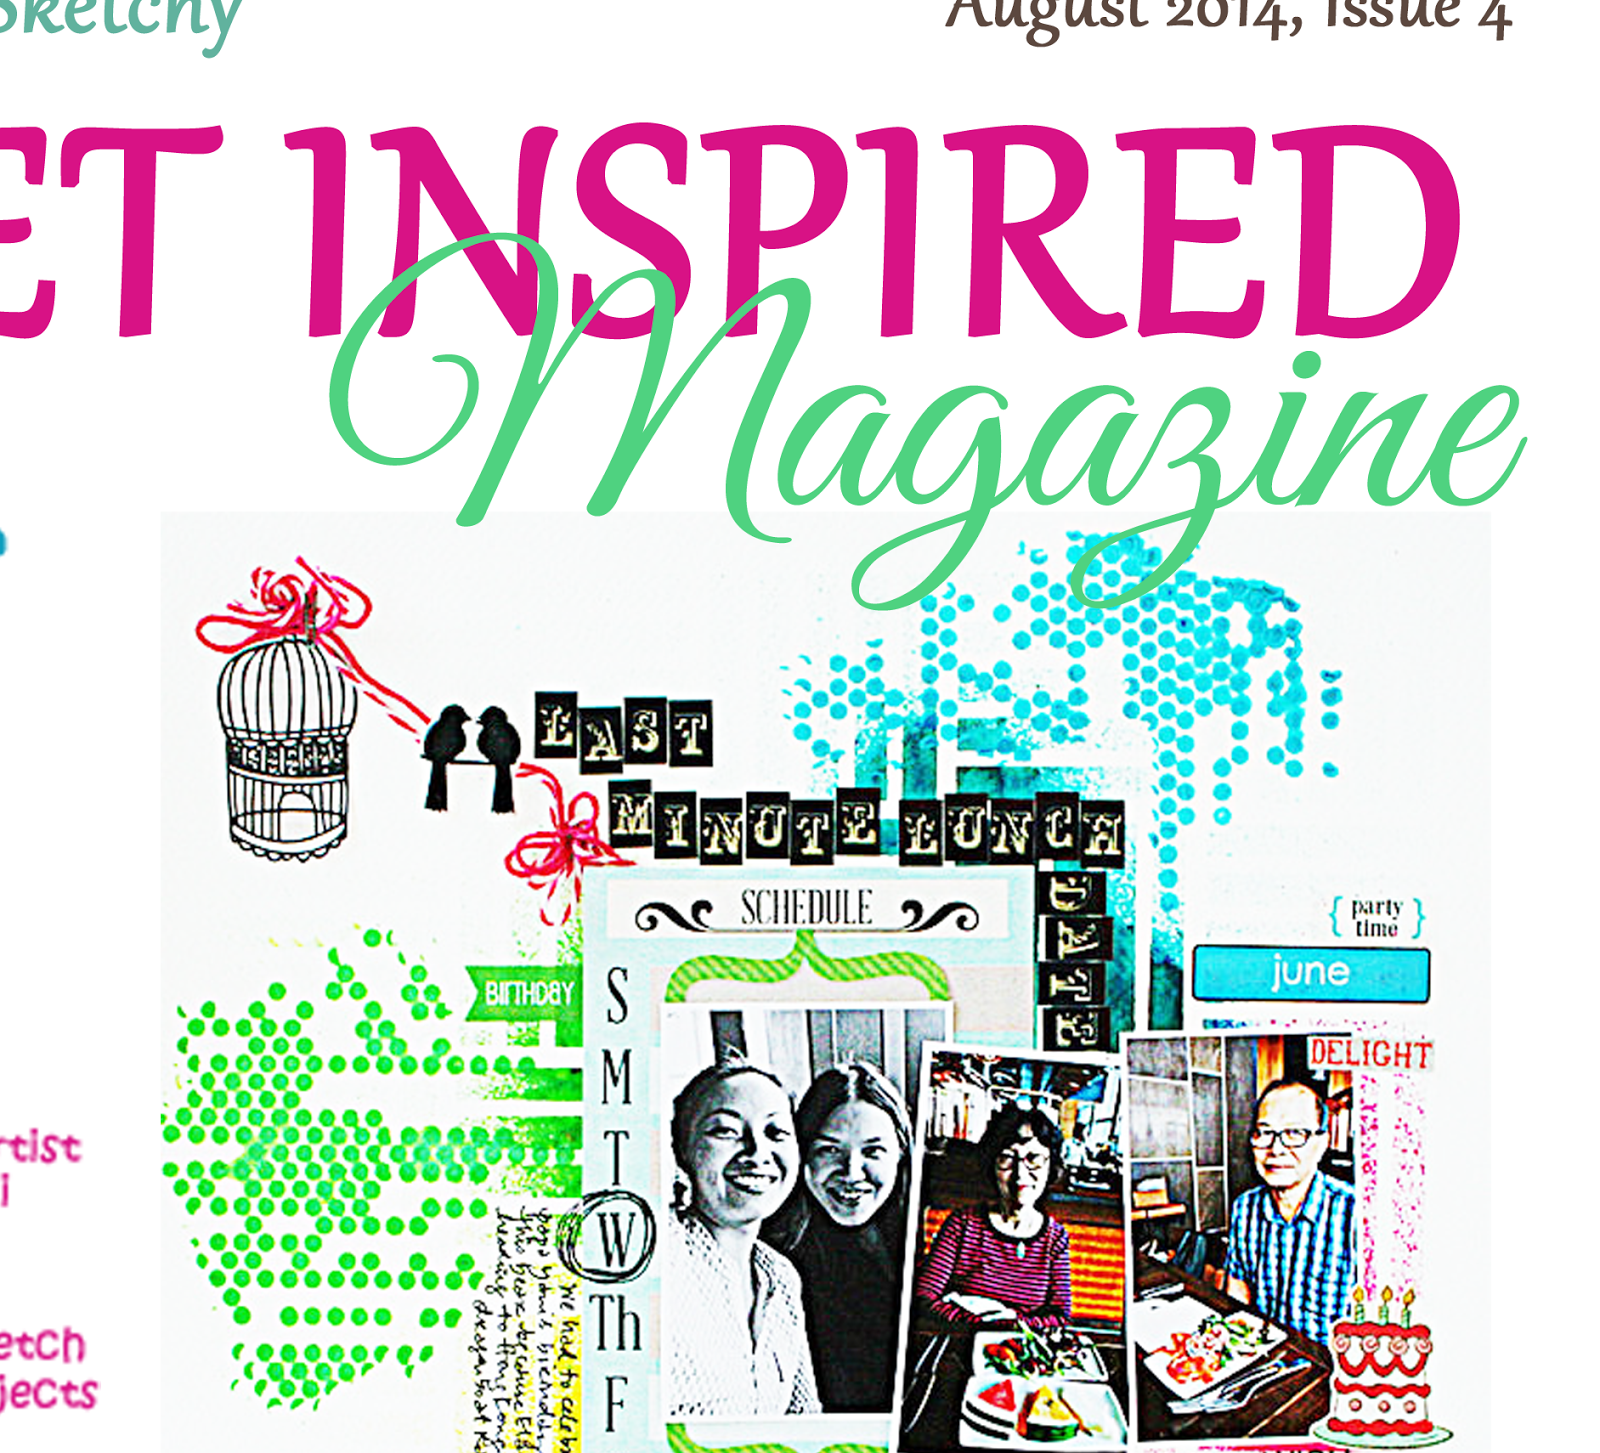 Get inspired Magazine 4th issue